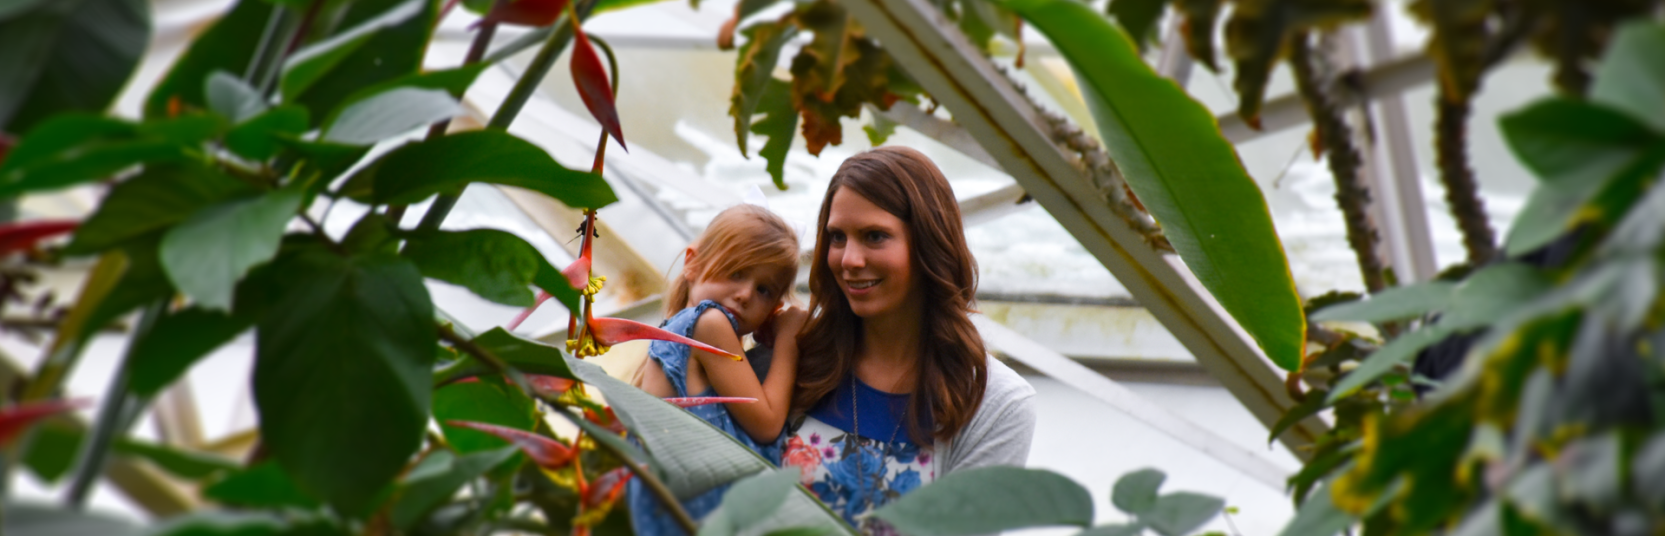 Spring Break at the Botanical Conservatory